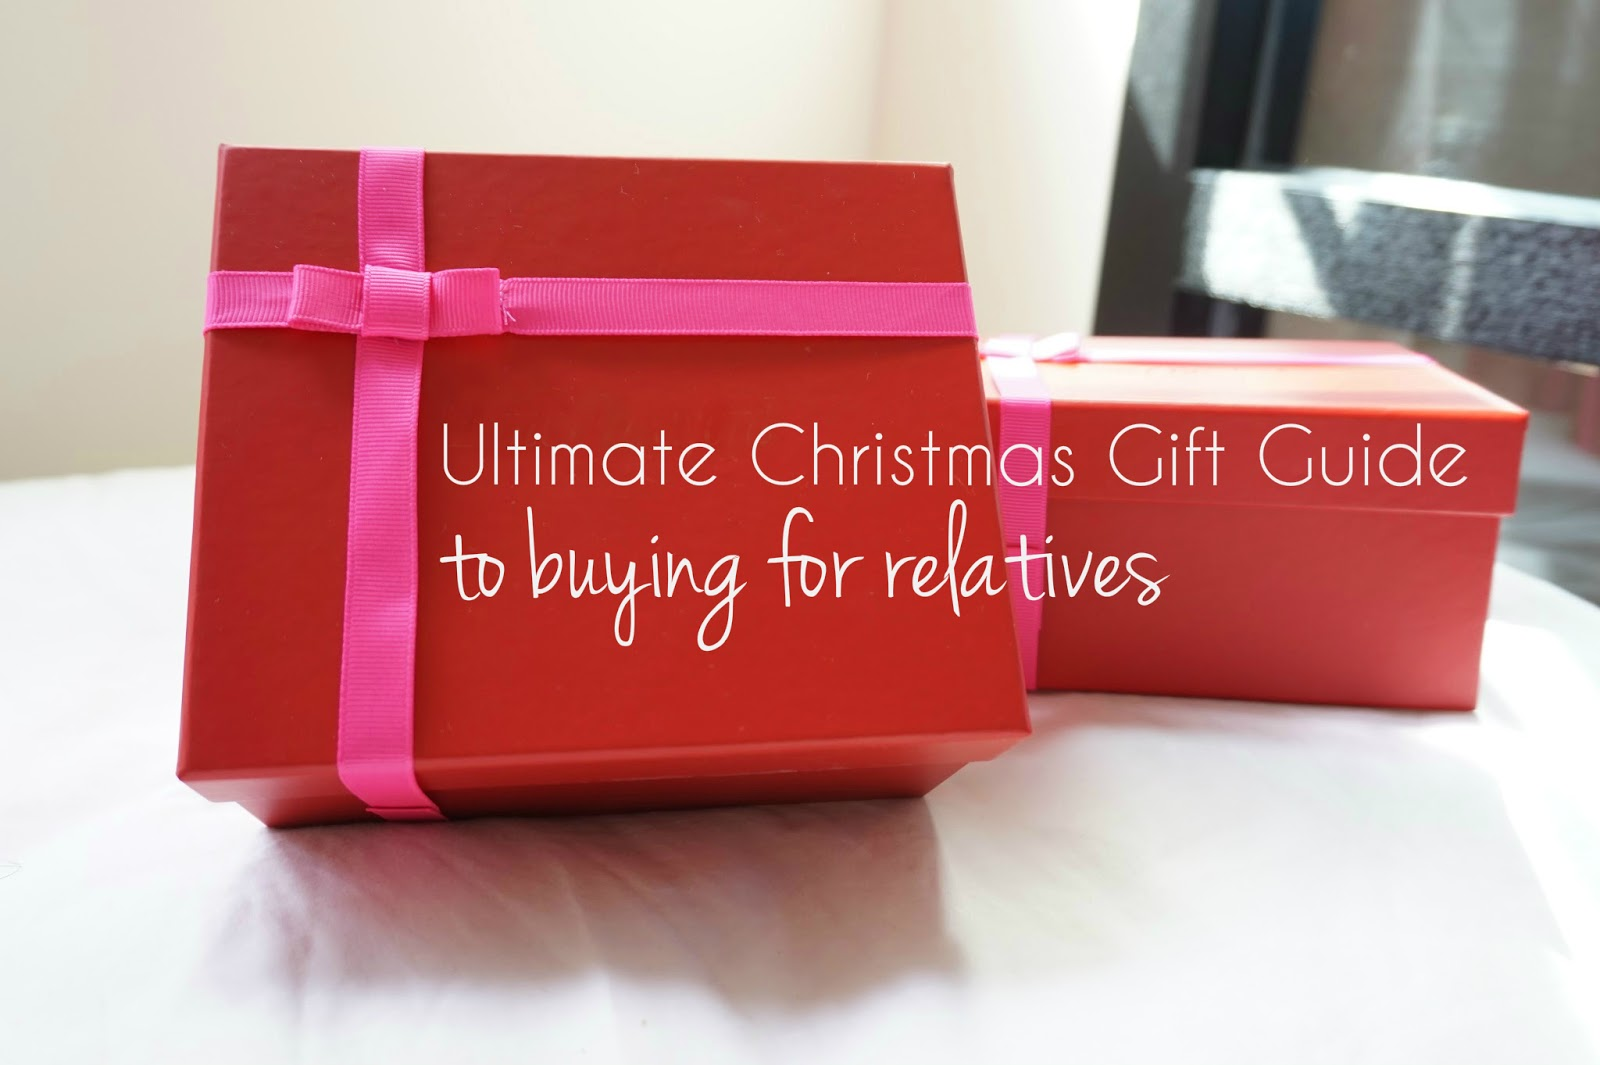 ultimate christmas gift guide for buying for difficult relatives family members presents